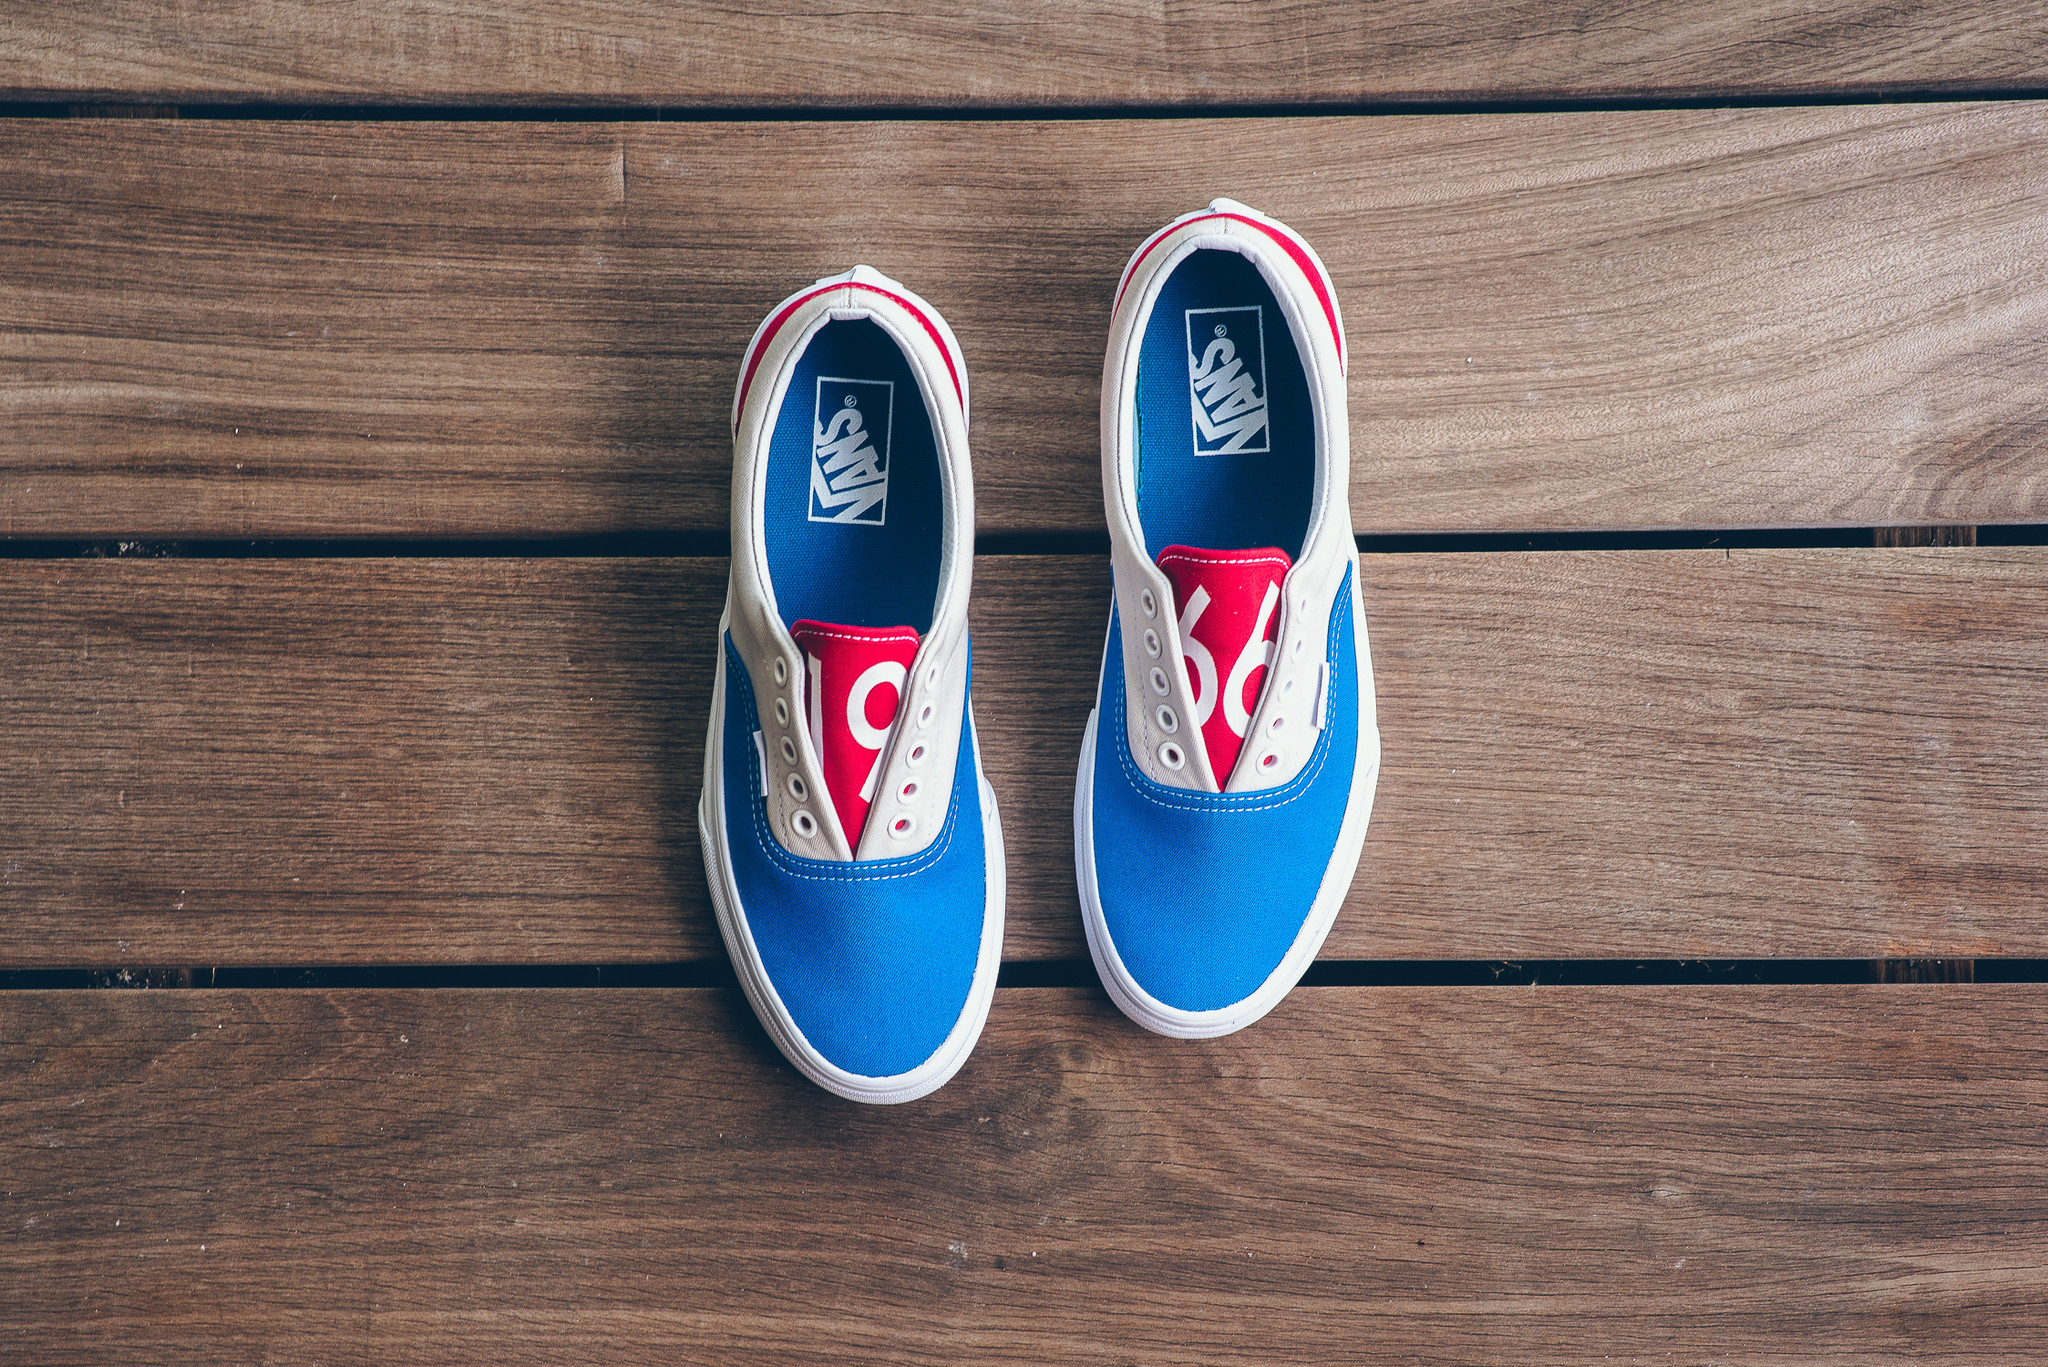 Vans Goes Back To Its Roots With This Colorway Of The Vans Era ...